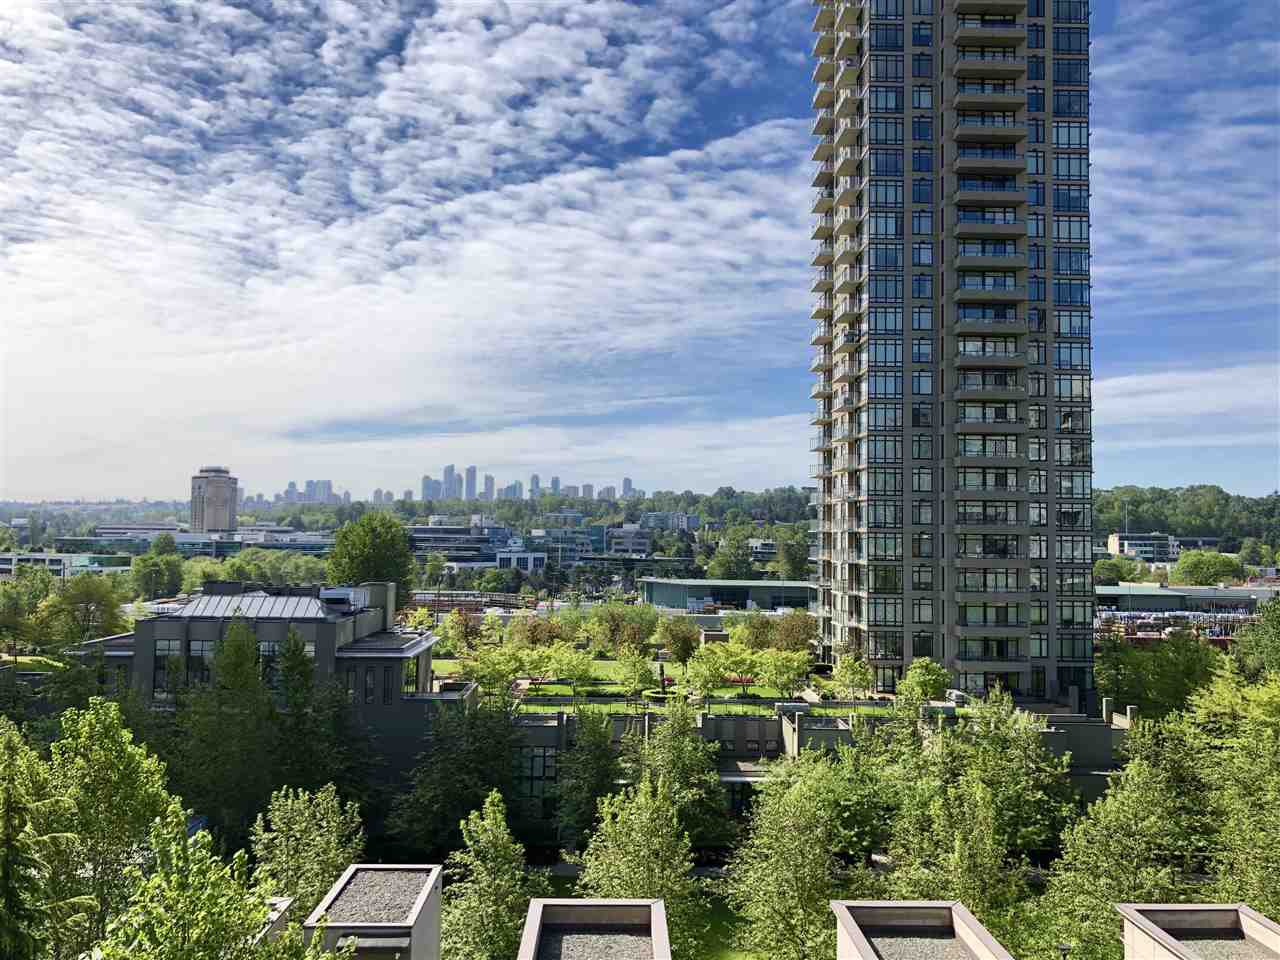 """Main Photo: 705 4250 DAWSON Street in Burnaby: Brentwood Park Condo for sale in """"OMA2"""" (Burnaby North)  : MLS®# R2399354"""